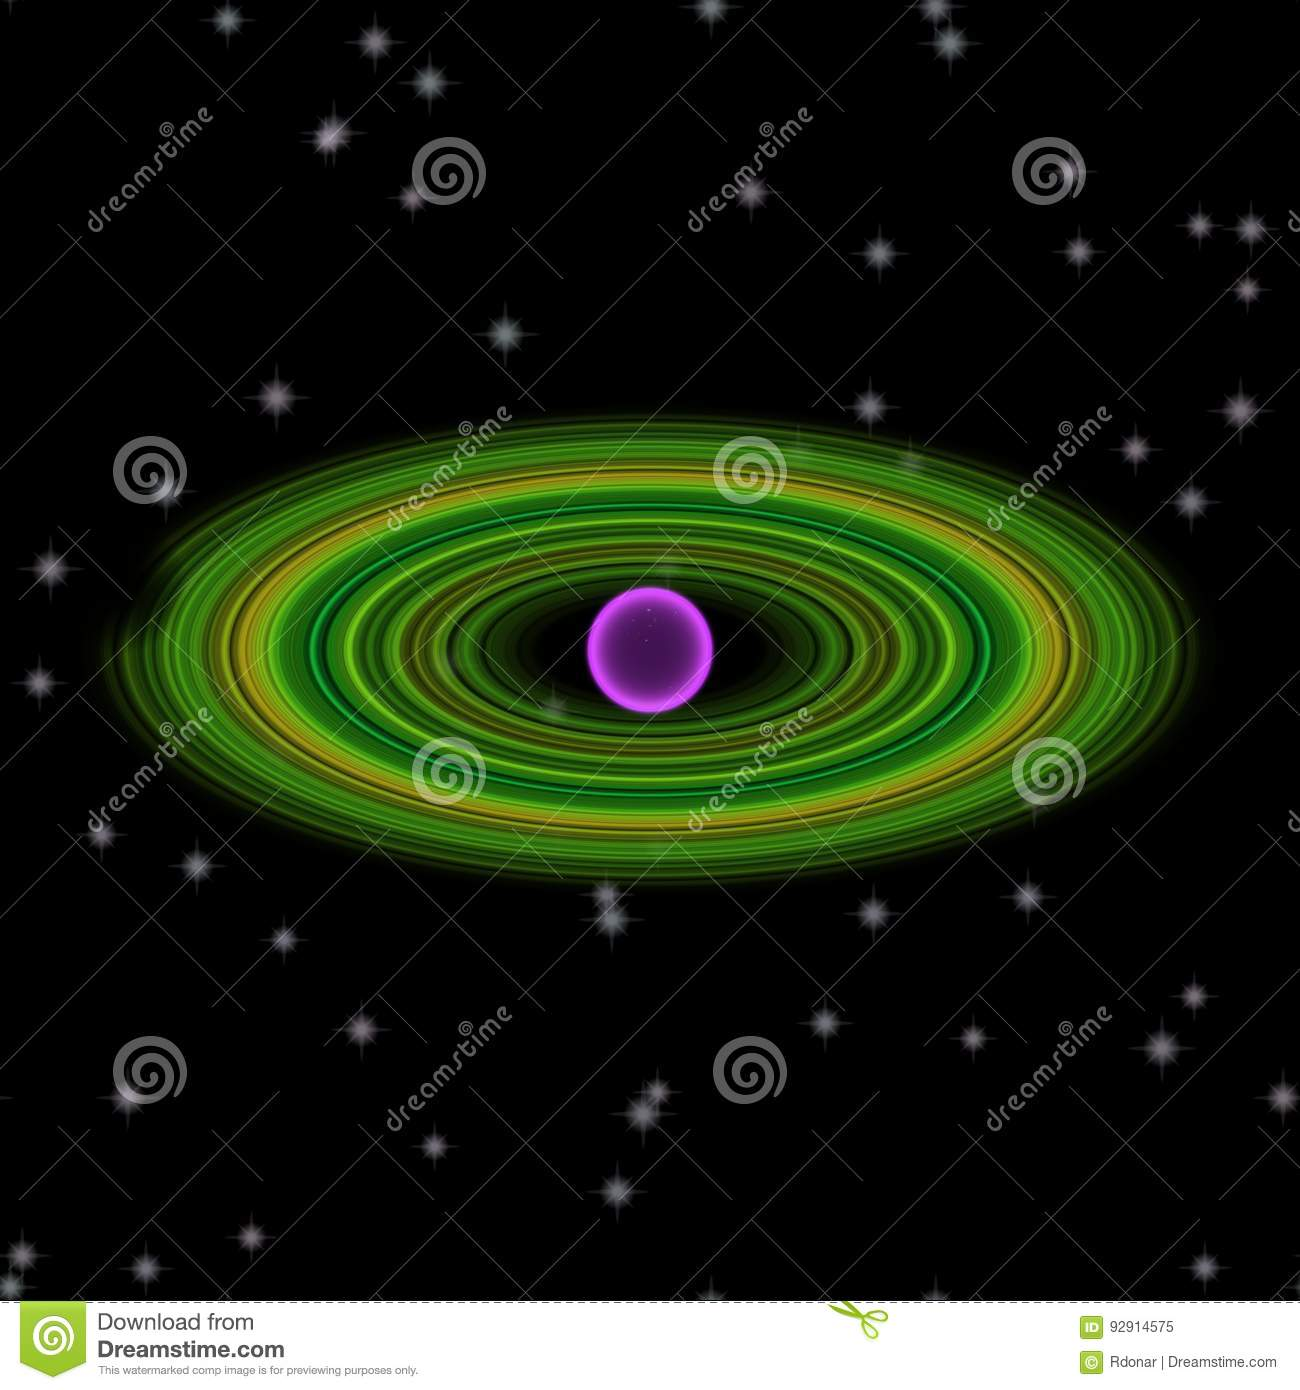 Shinning planet in far uniferse. Abstract planet with colorful ring somewhere